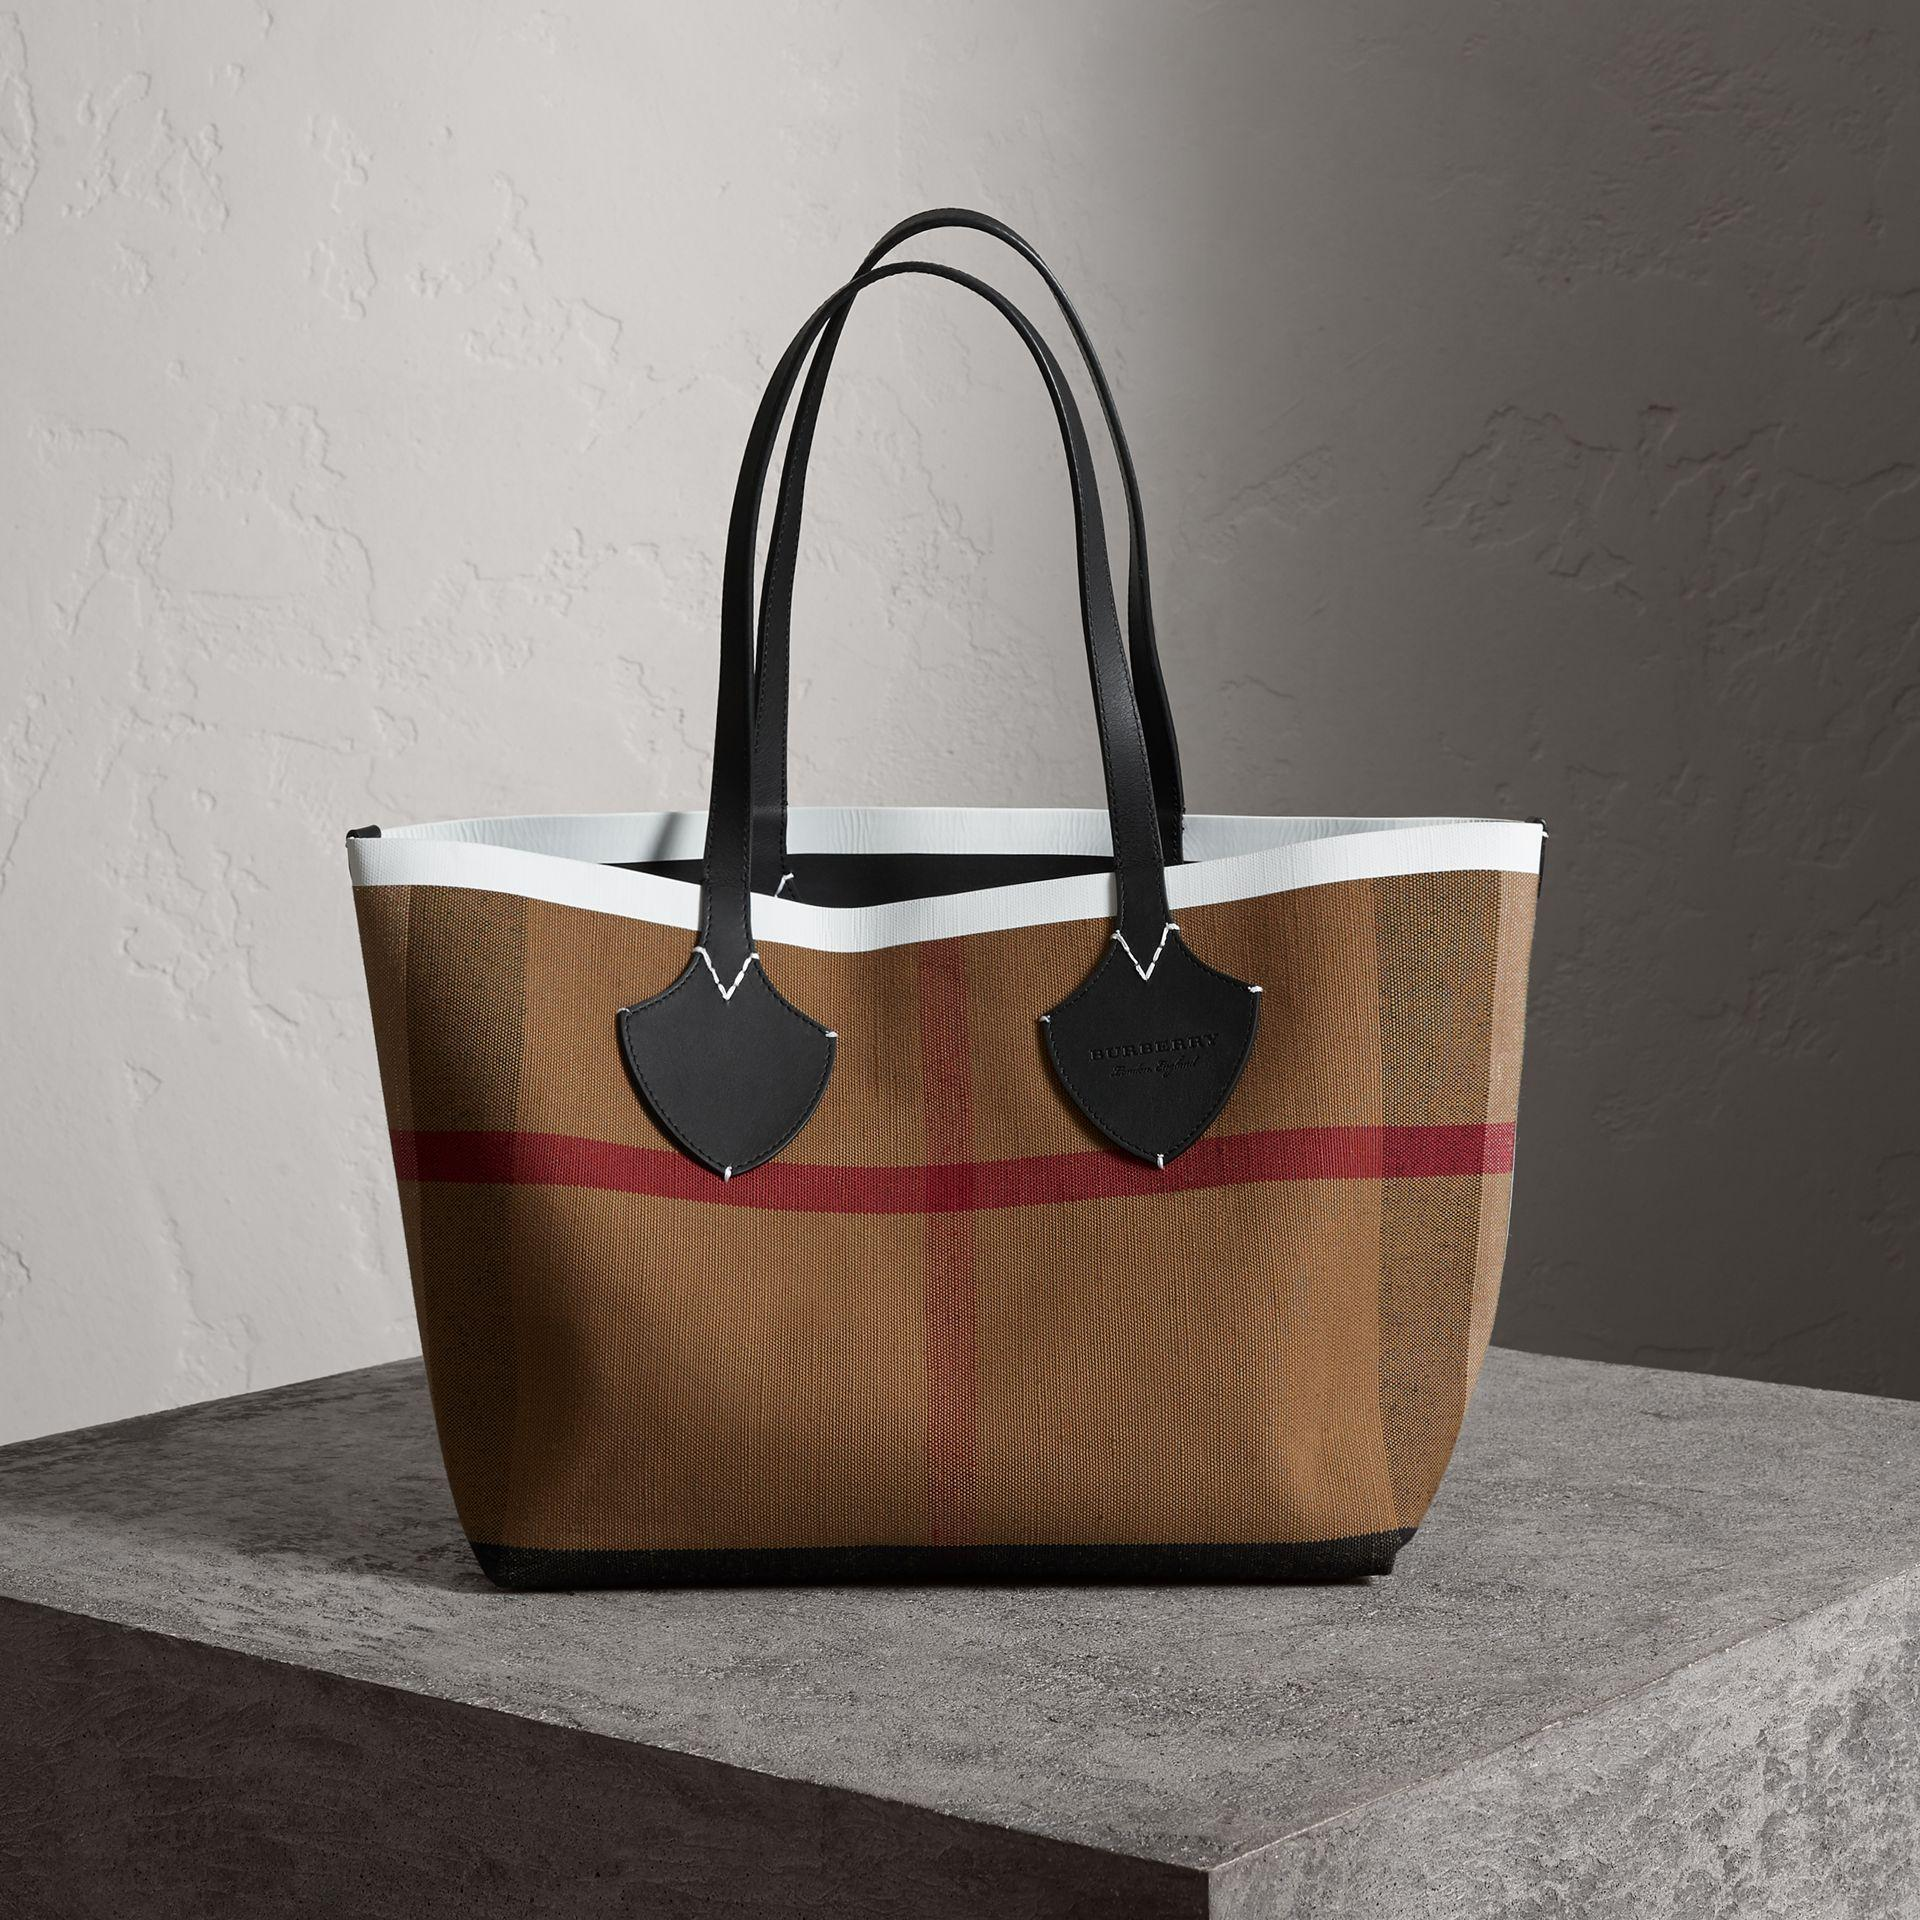 804e3f4612e2 Burberry The Medium Giant Reversible Tote In Canvas And Leather In  Black White